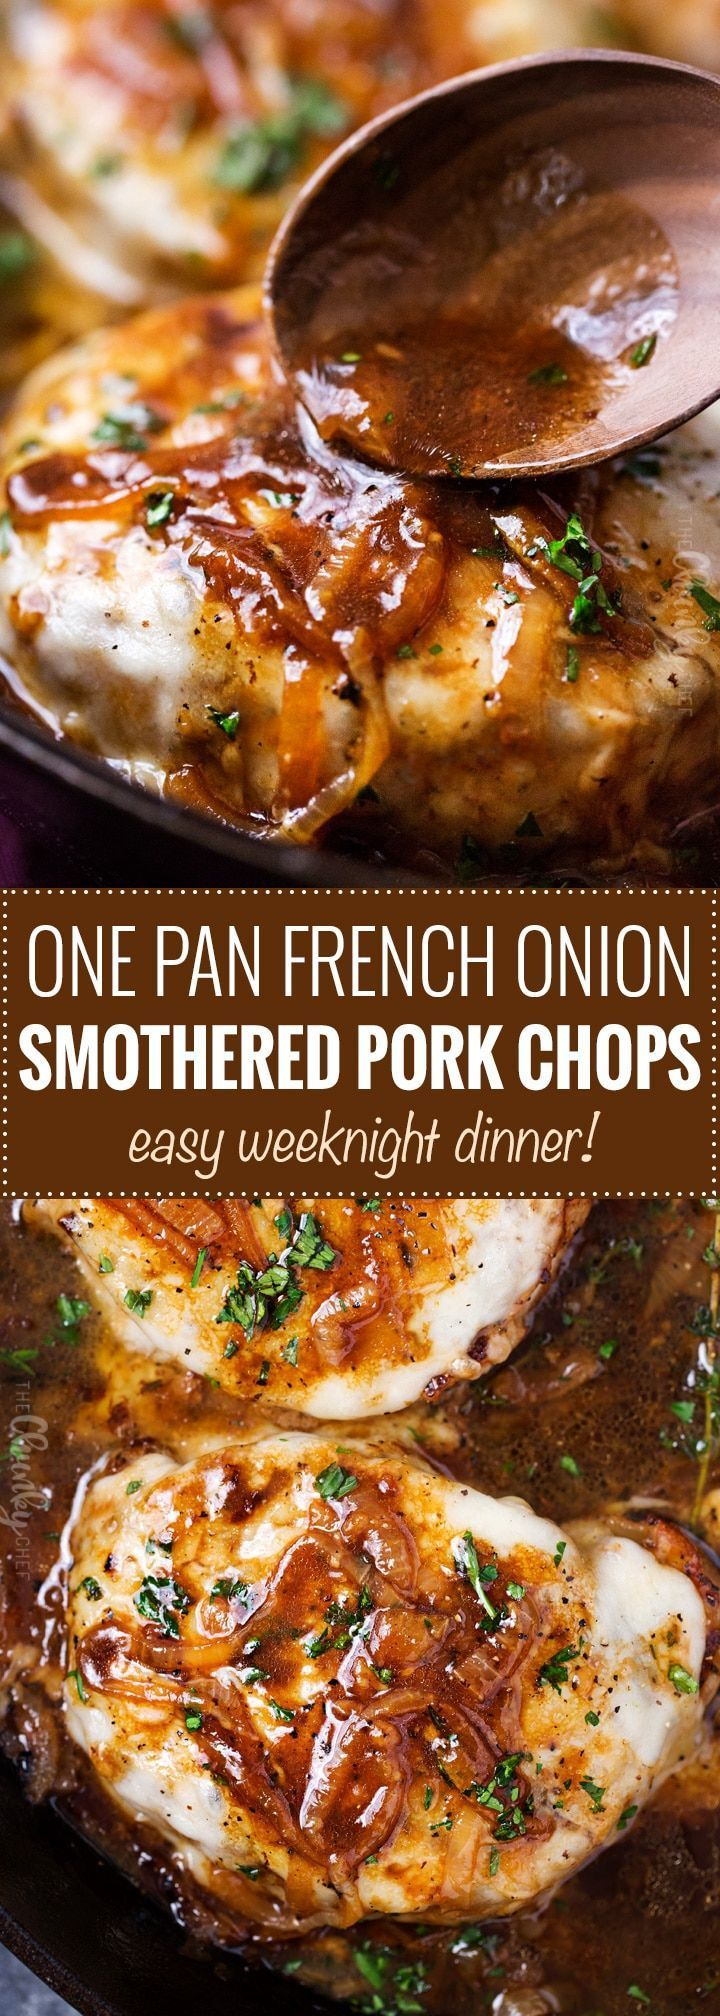 One Pan French Onion Smothered Pork Chops |